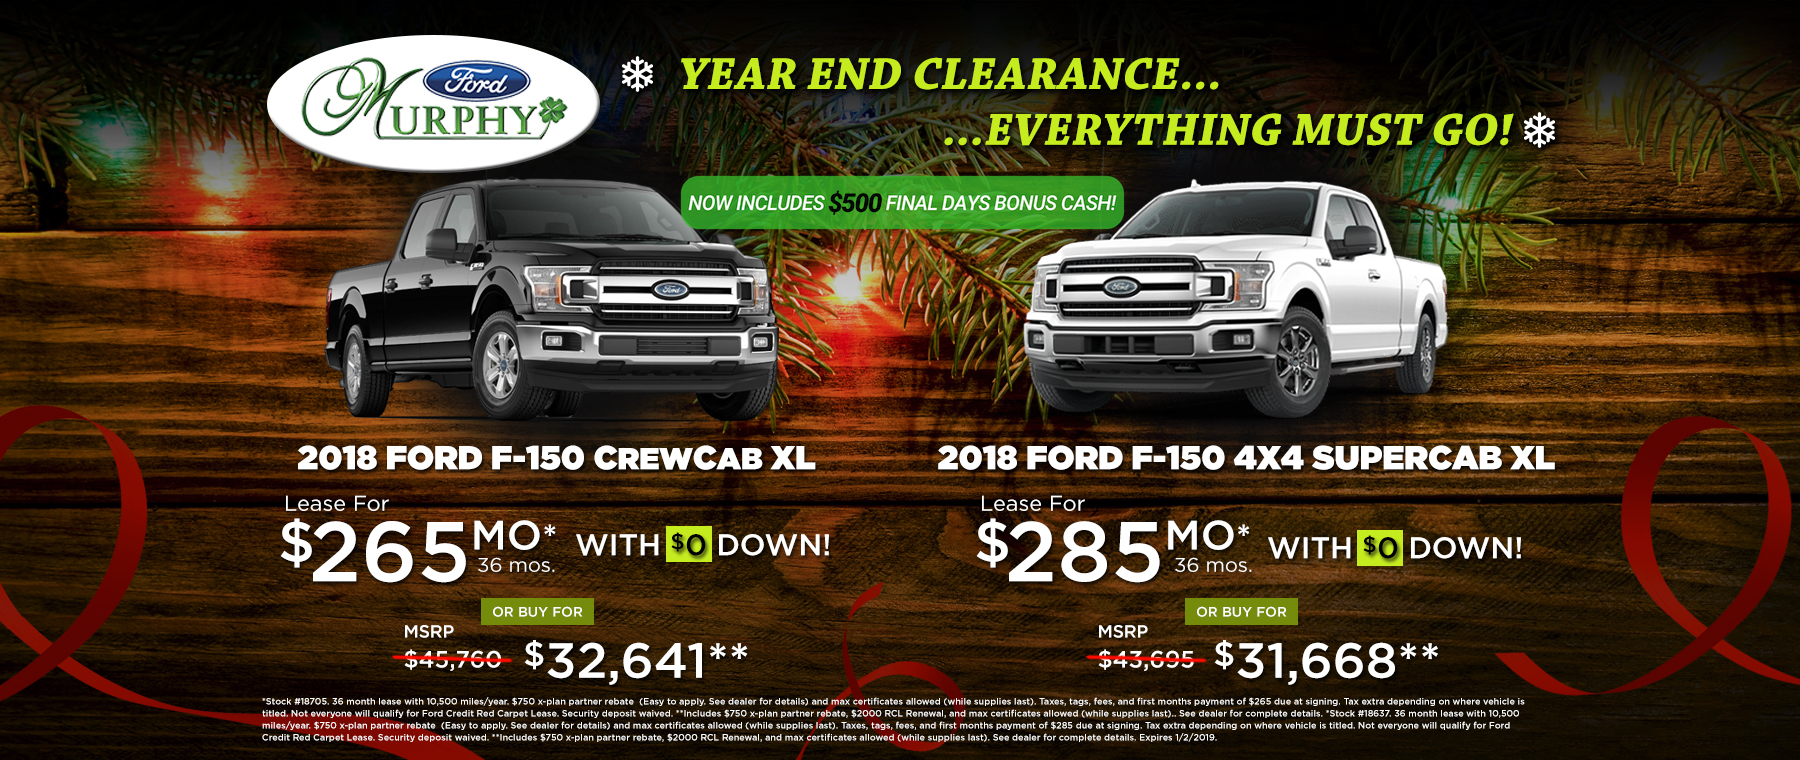 2018 Ford F-150 December Lease Offer